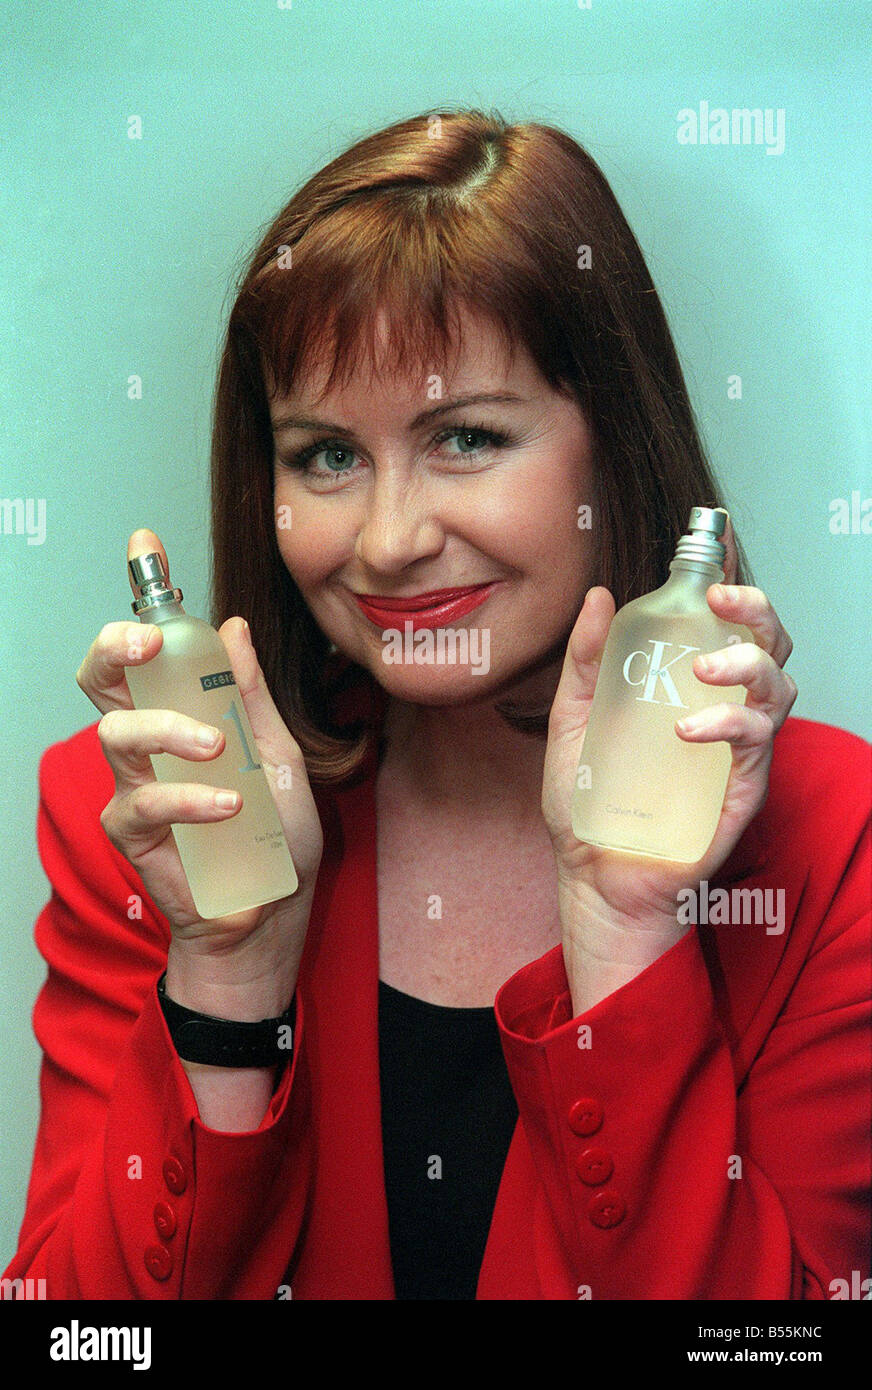 Sian Lloyd ITV weathergirl in feature on aftershaves for men and women - Stock Image